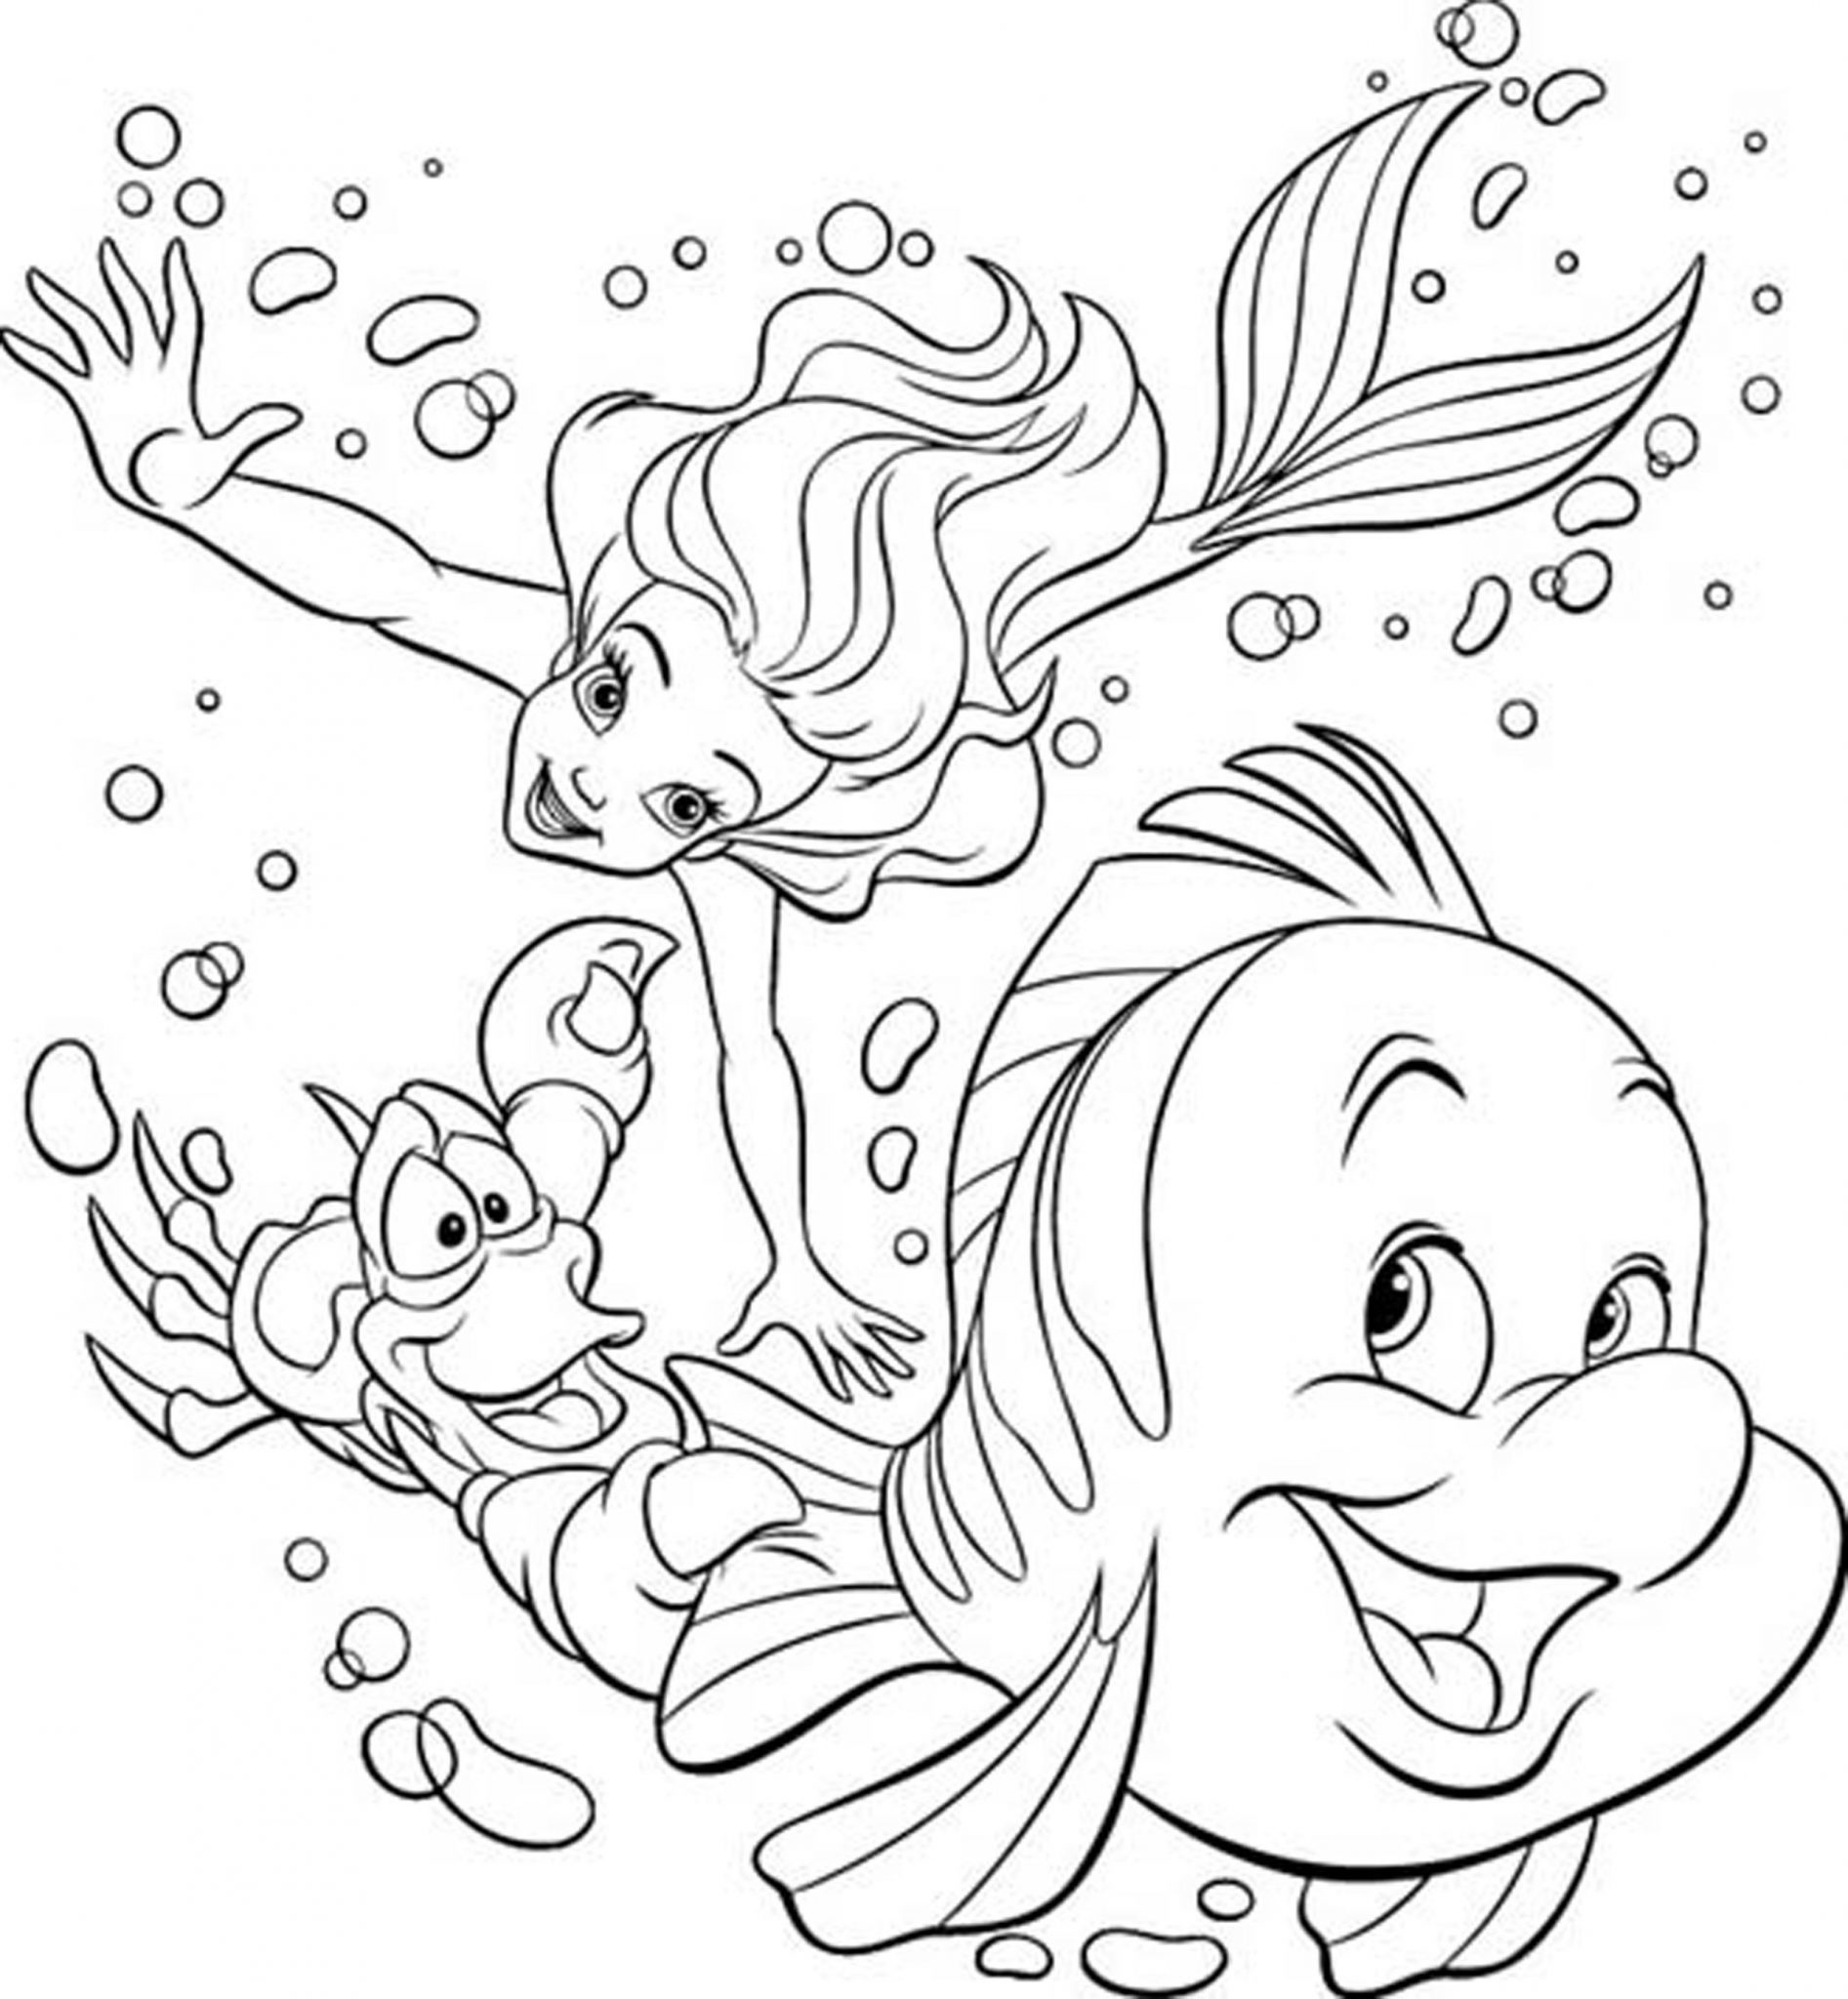 disney color pages 33 free disney coloring pages for kids baps color pages disney